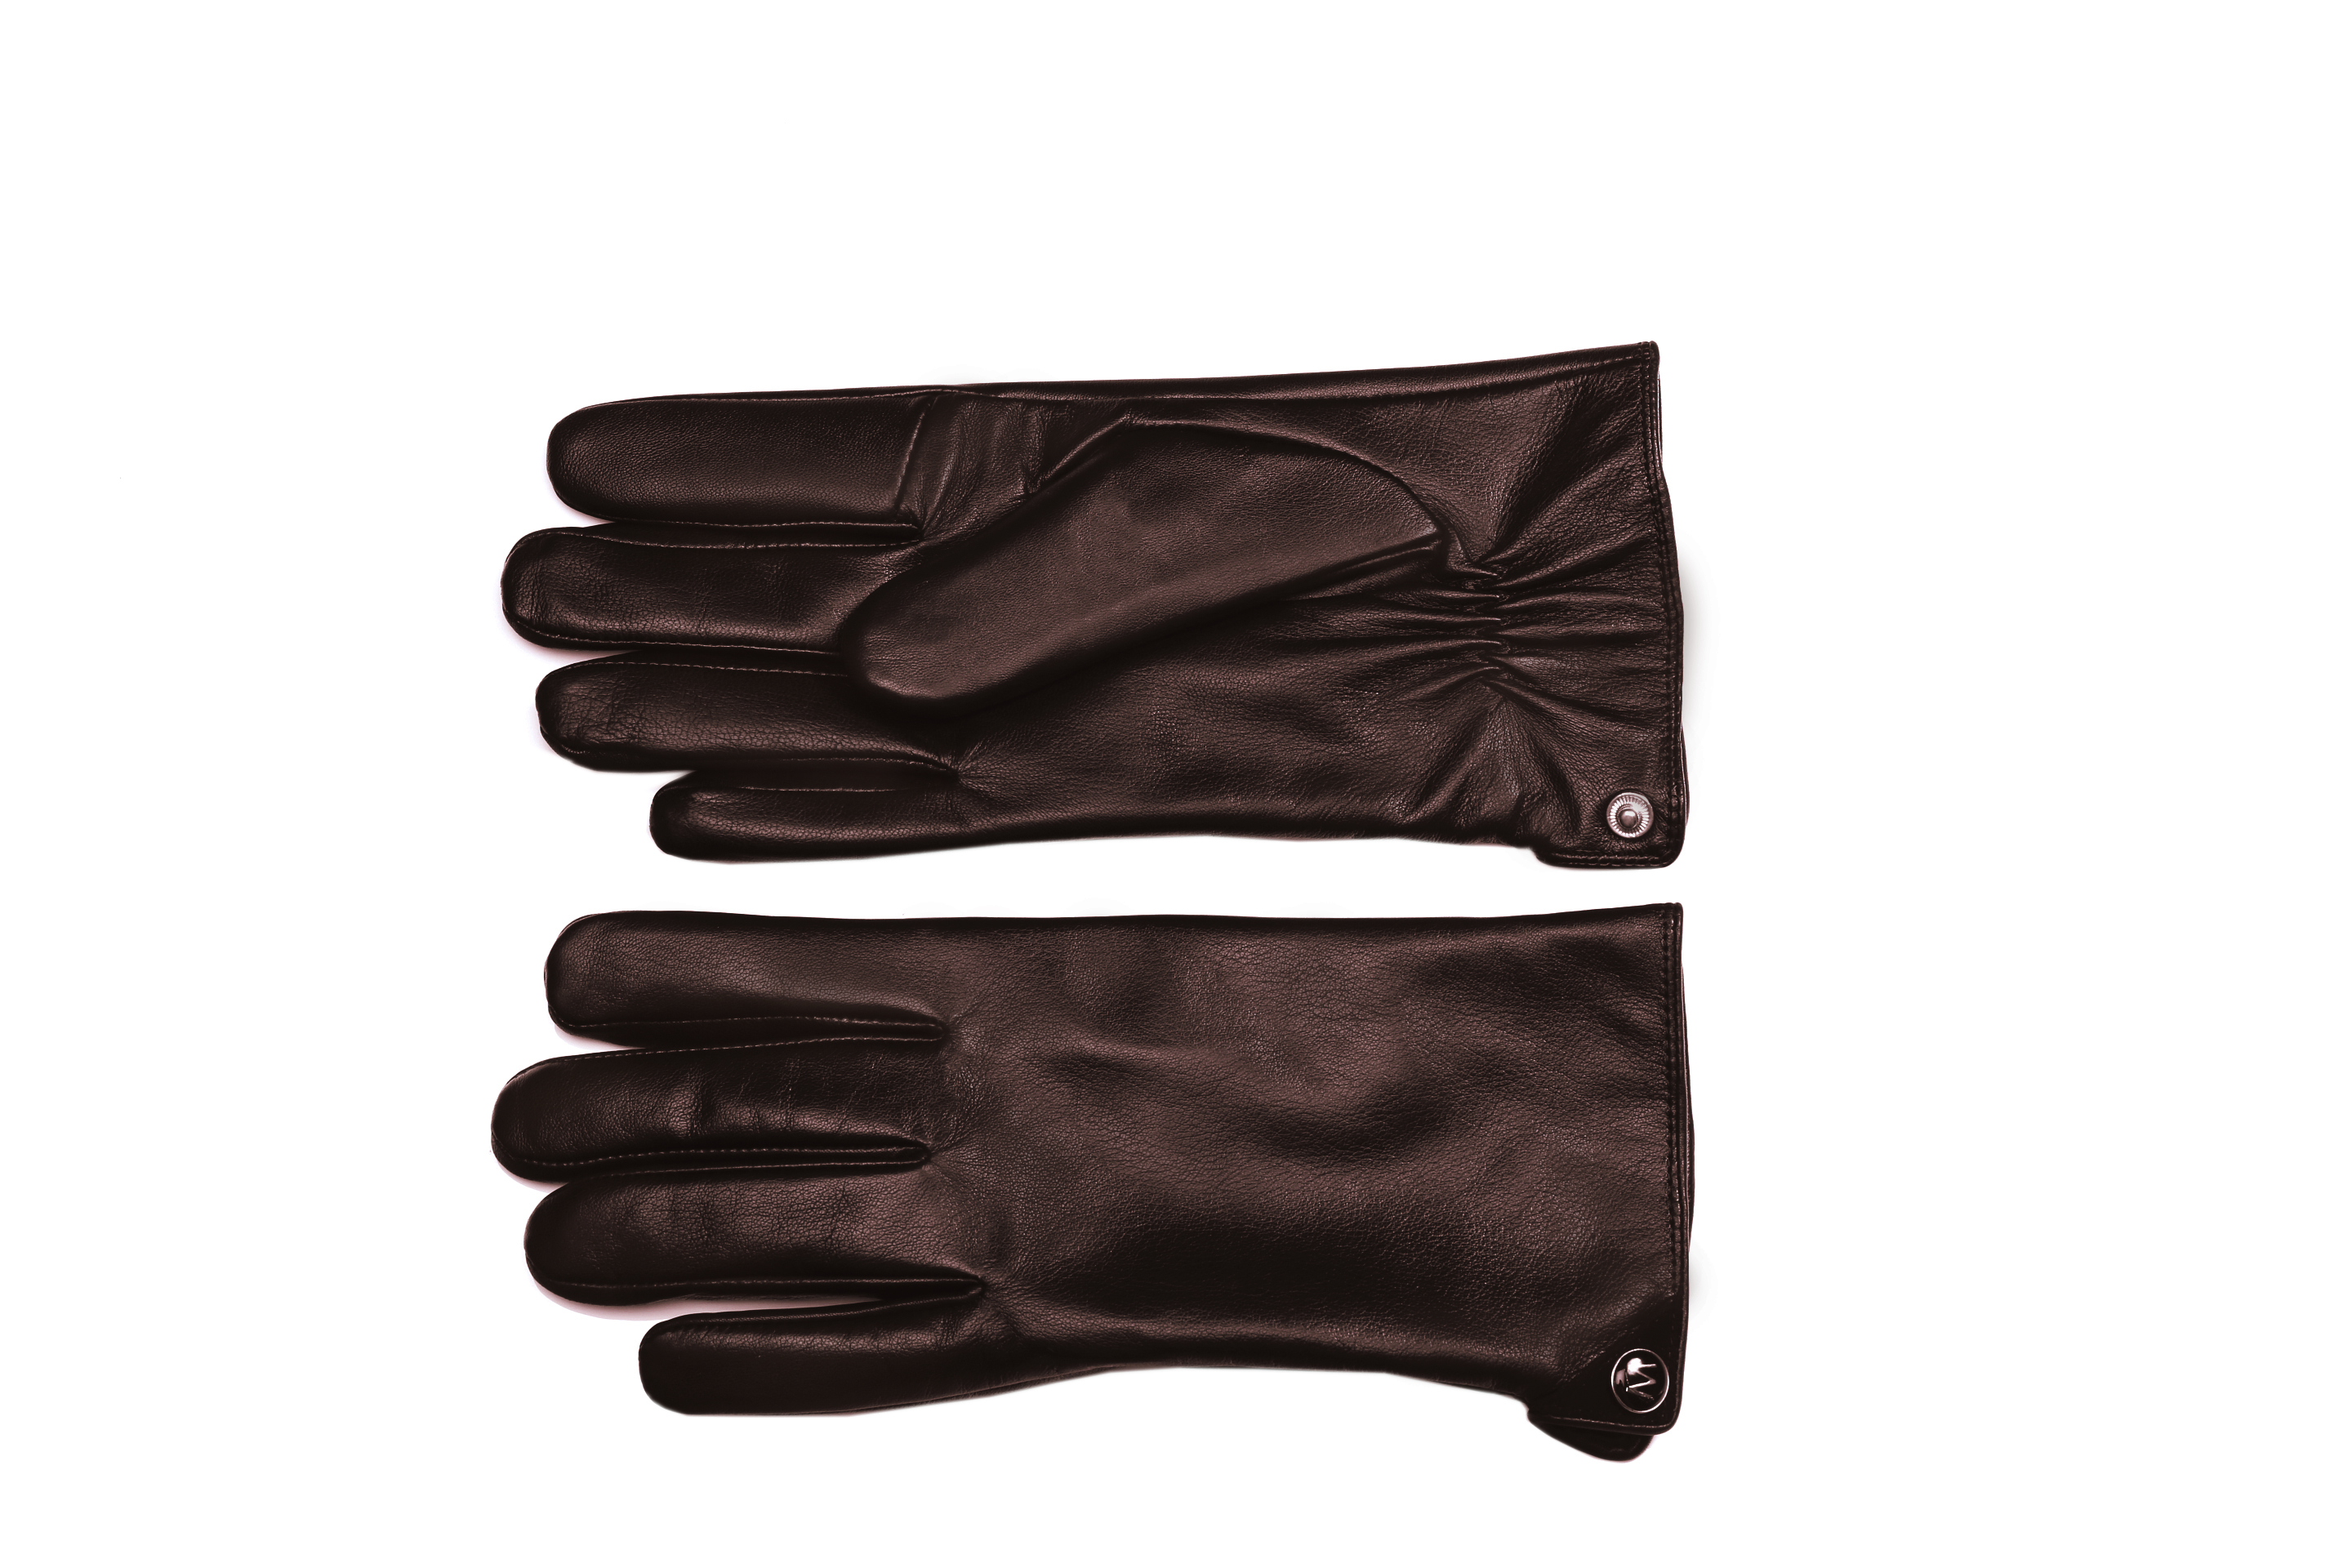 MoDA Men's Mr. Seattle Luxury Premium Leather Winter Driving Gloves with Touchscreen Technology Brown